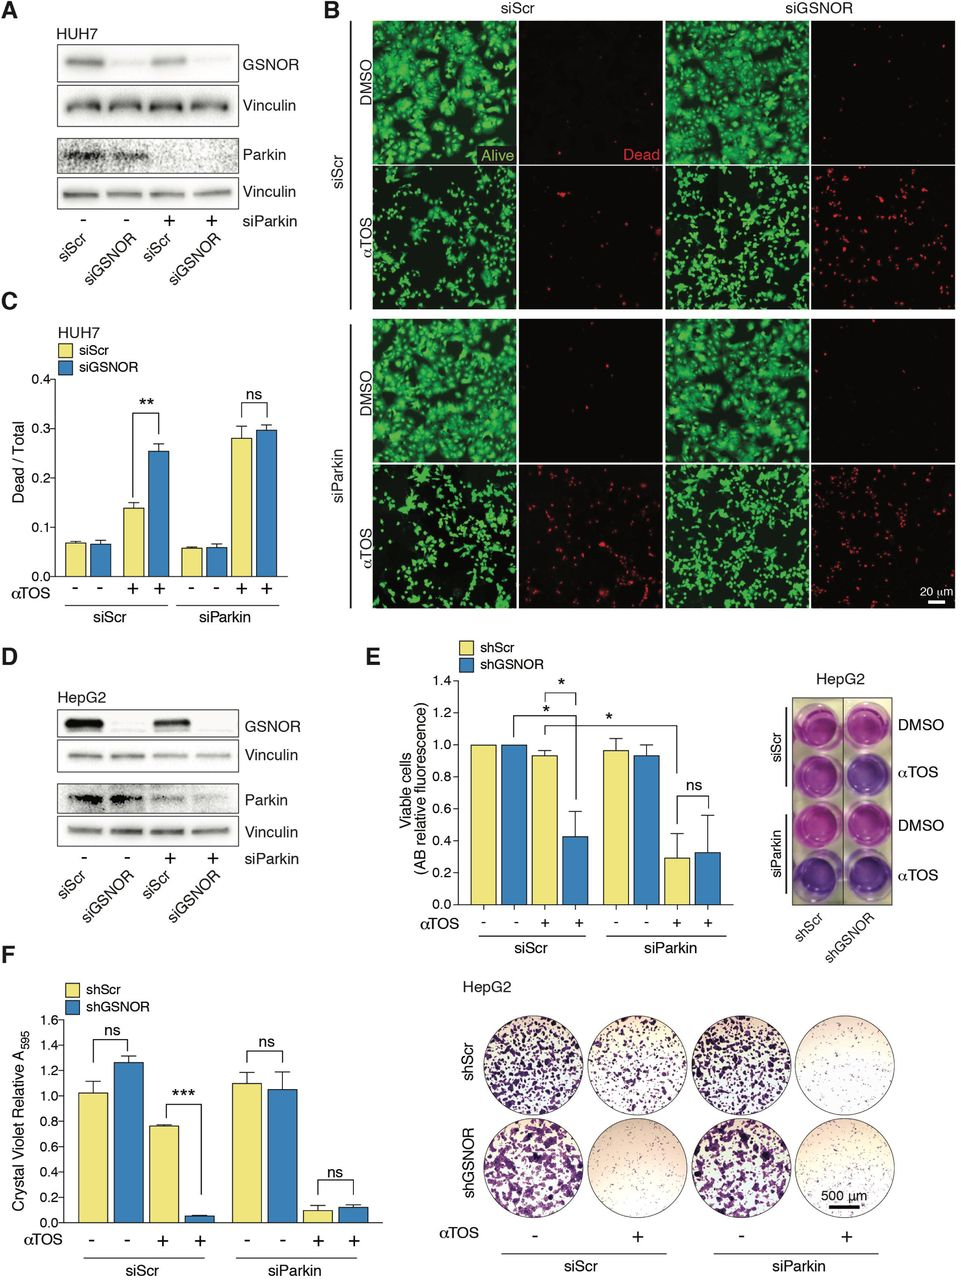 Mitophagy impairment contributes to GSNOR-deficient hepatocellular carcinoma sensitivity to αTOS. (A) Western blot analysis of GSNOR and Parkin in HUH7 cells transiently downregulating GSNOR (siGSNOR) and/or Parkin (siParkin). Vinculin was used as loading control. (B) Cell viability fluorescent assay performed in HUH7 cells singly or doubly transfected with siGSNOR or siParkin RNAs, and treated with 40 μM αTOS. Dead cells were stained with propidium iodide (red), whereas living cells were stained with calcein-AM (green). DMSO was selected as a control. (C) Cell death evaluation as ratio between dead and total cells and expressed as mean ± SEM of n = 5 different fields of n=3 independent experiments. ** p